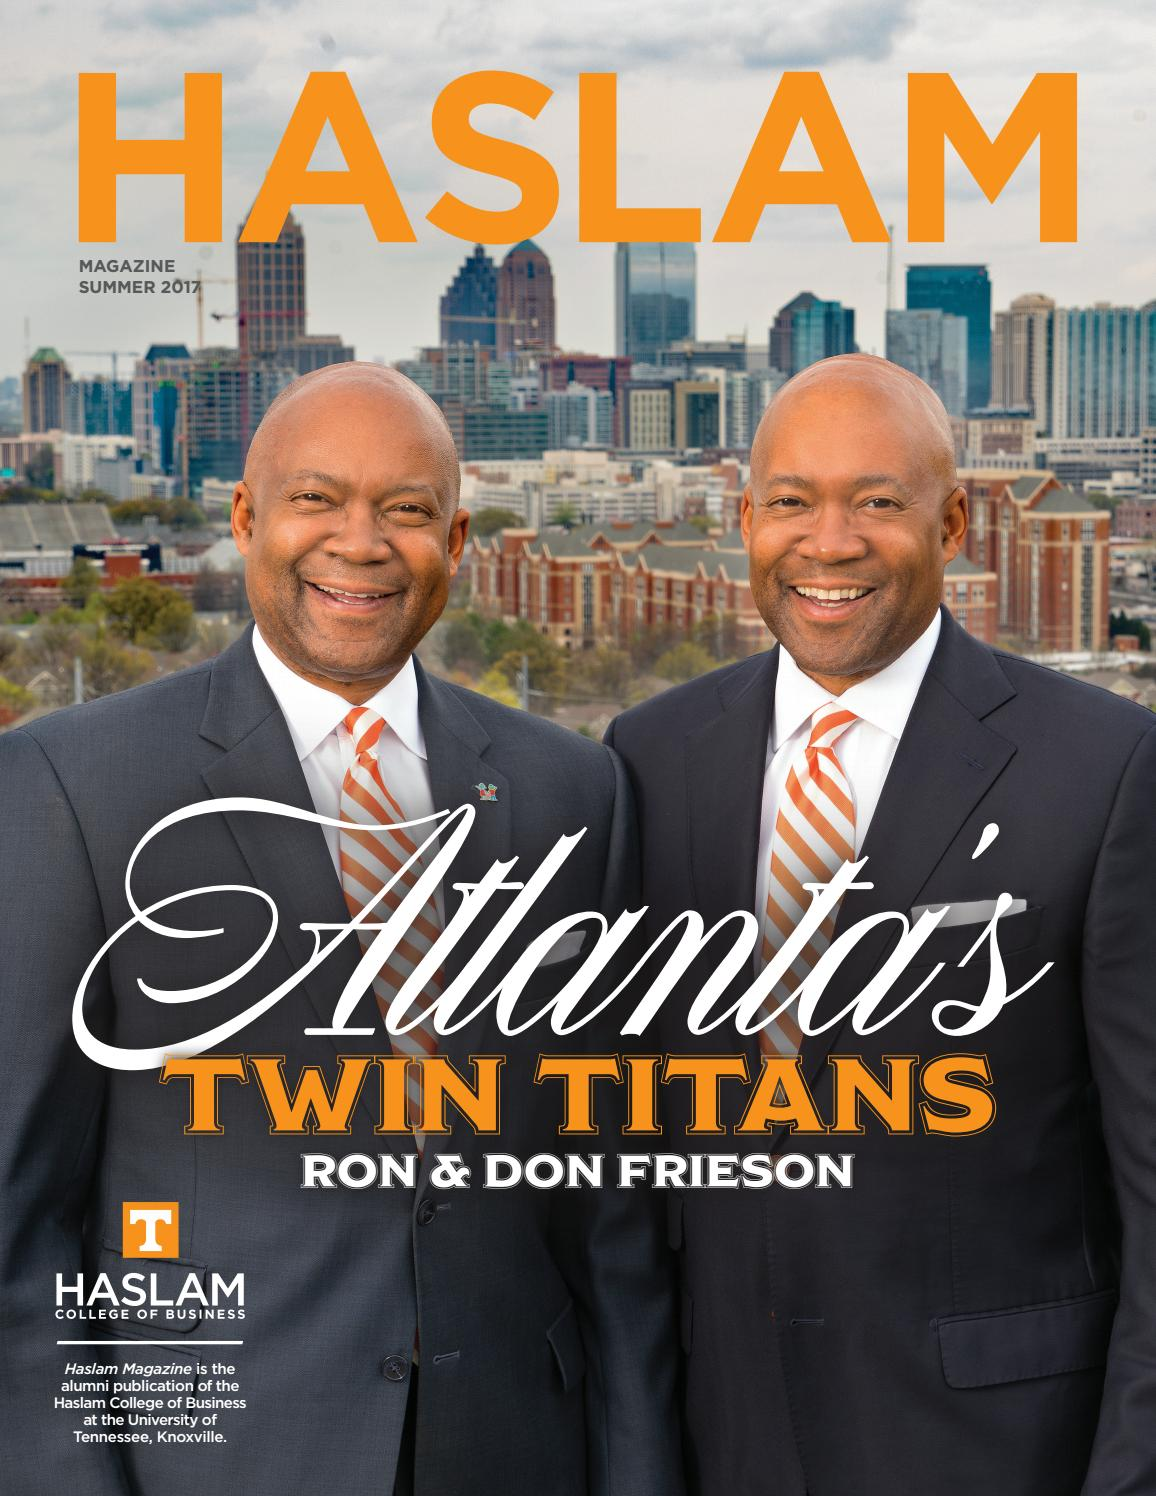 Haslam Magazine - Summer 2017 by UT Haslam - issuu